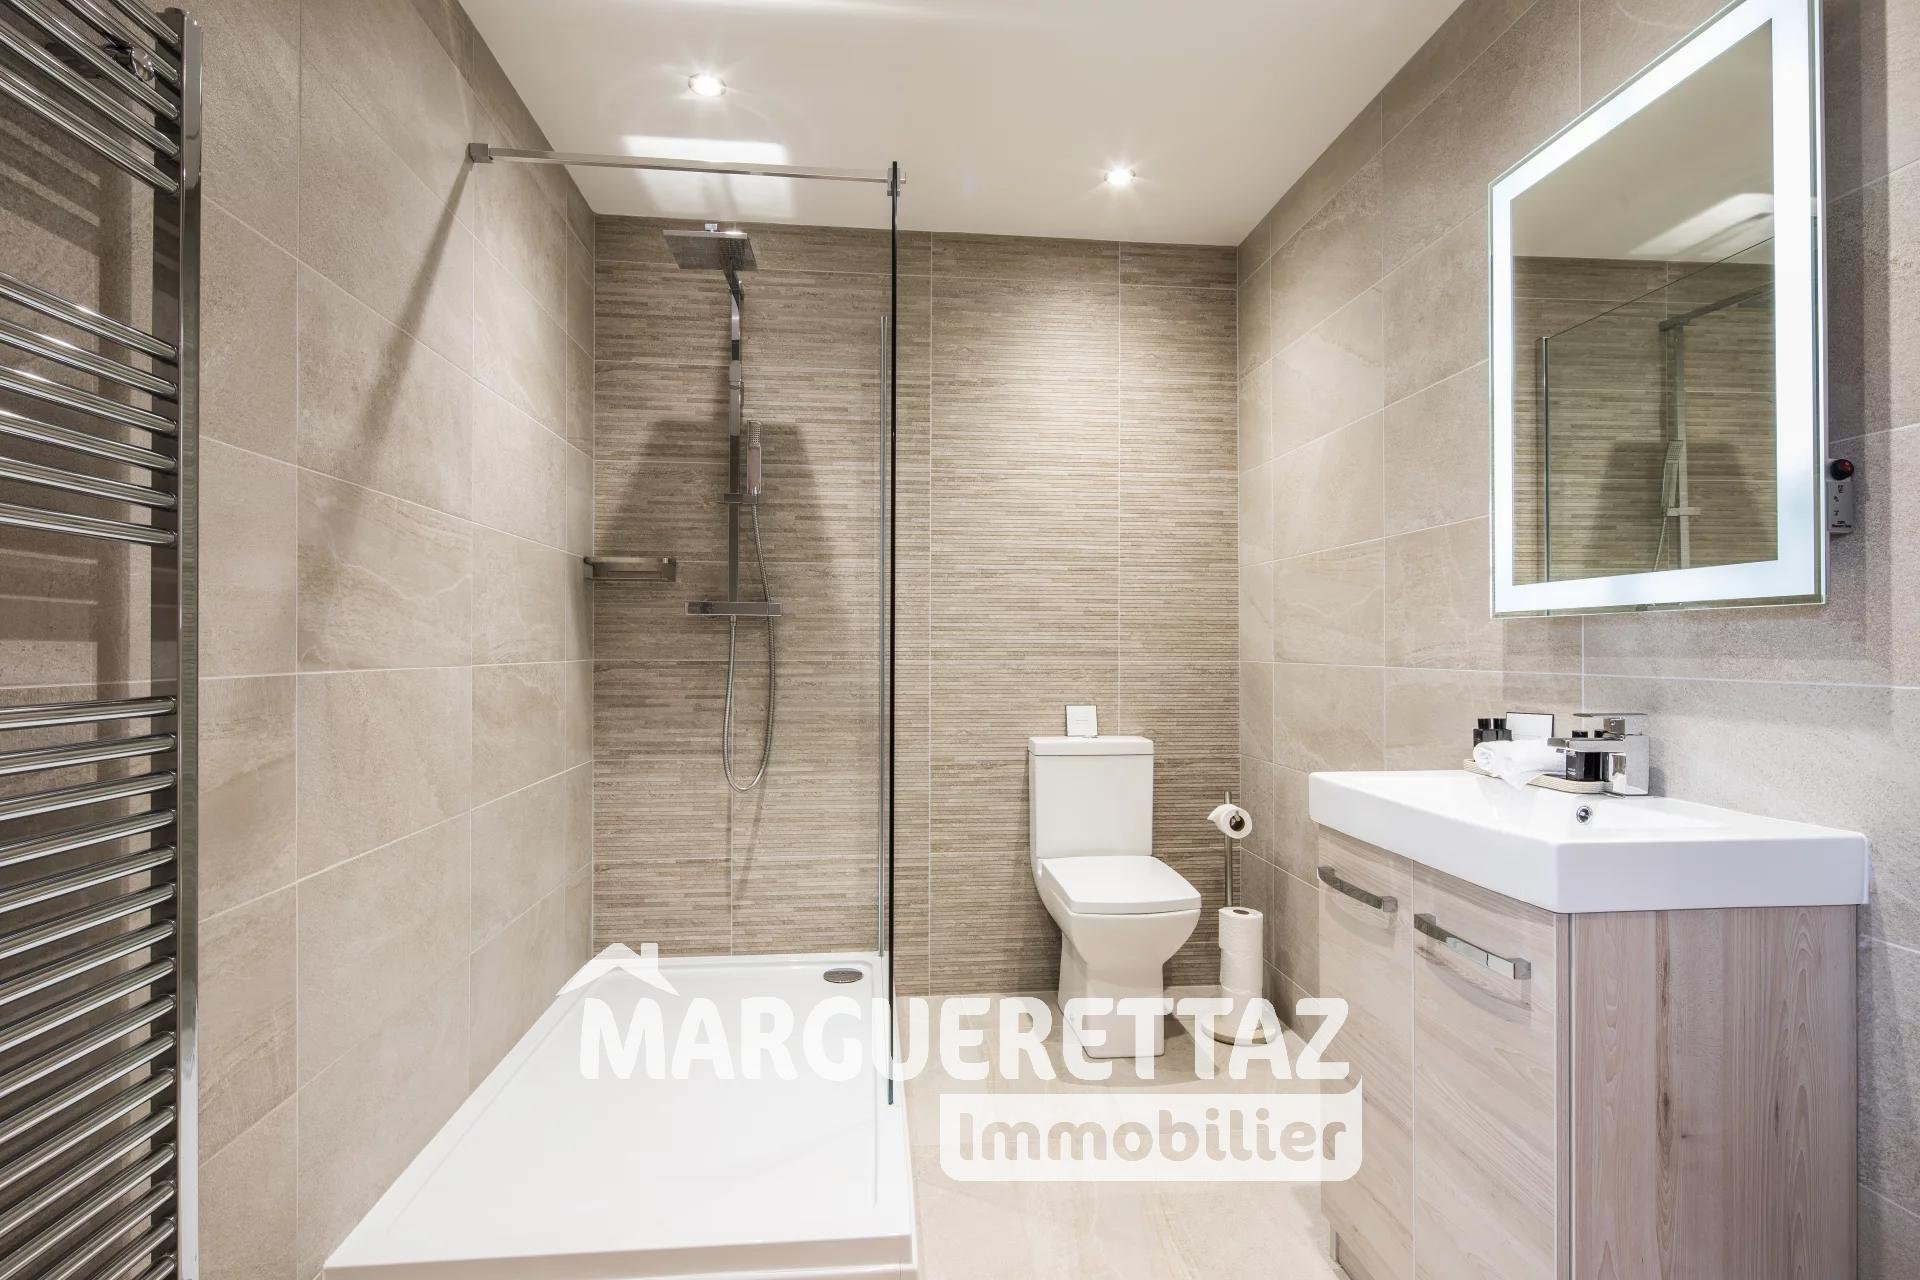 bathroom interior toilet sink mirror bath home shower design house white room wc architecture tile luxury clean indoor tiles new hotel contemporary apartment wall public